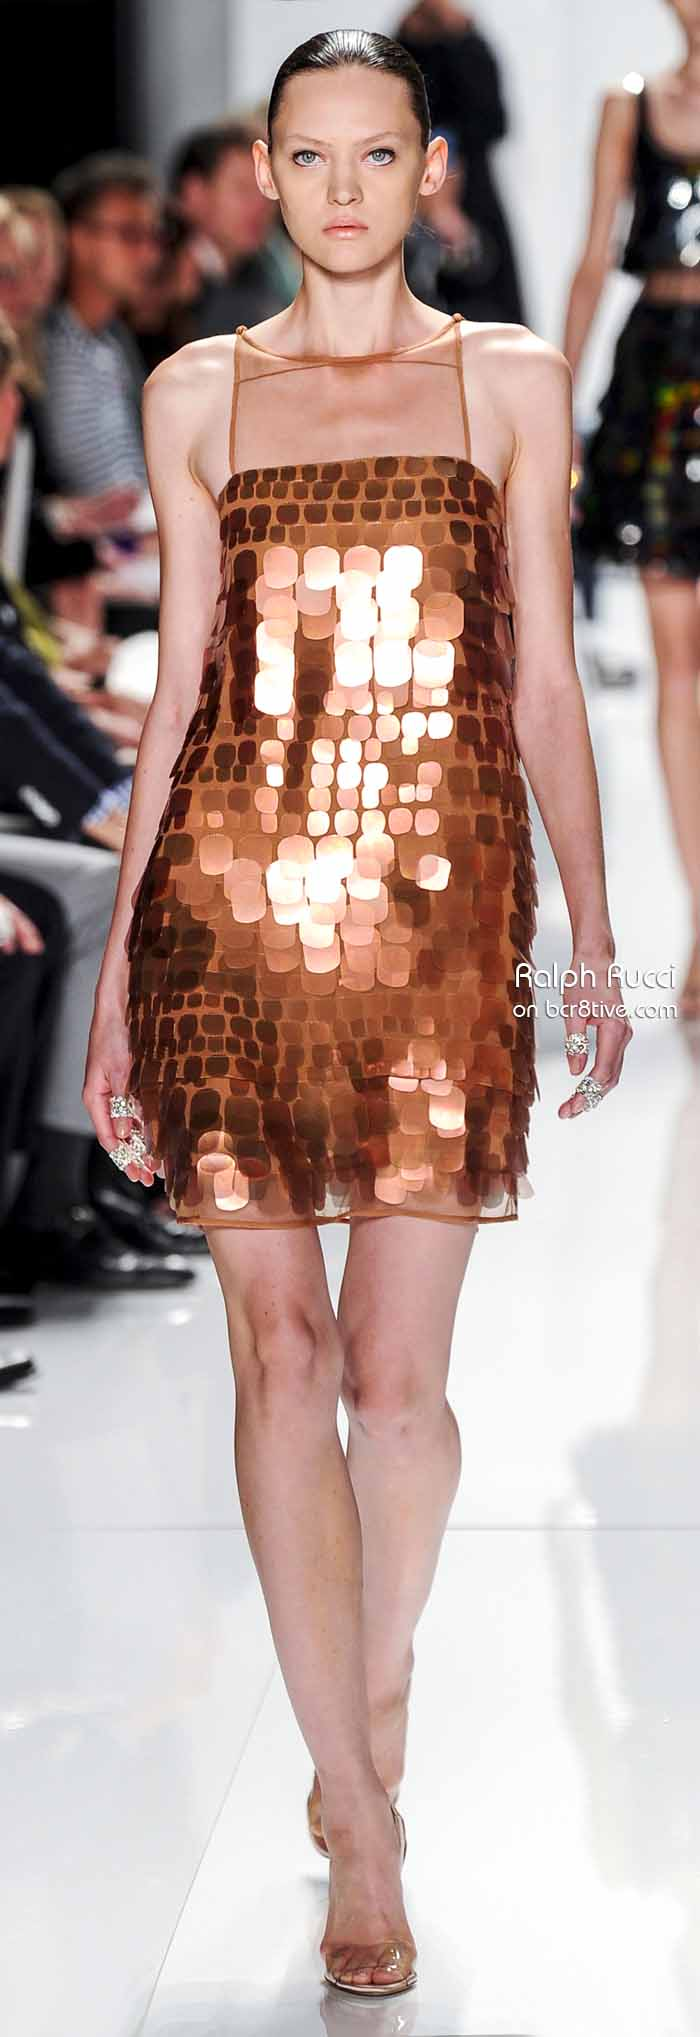 Ralph Rucci Spring 2014 #NYFW - Copper Sequin Dress